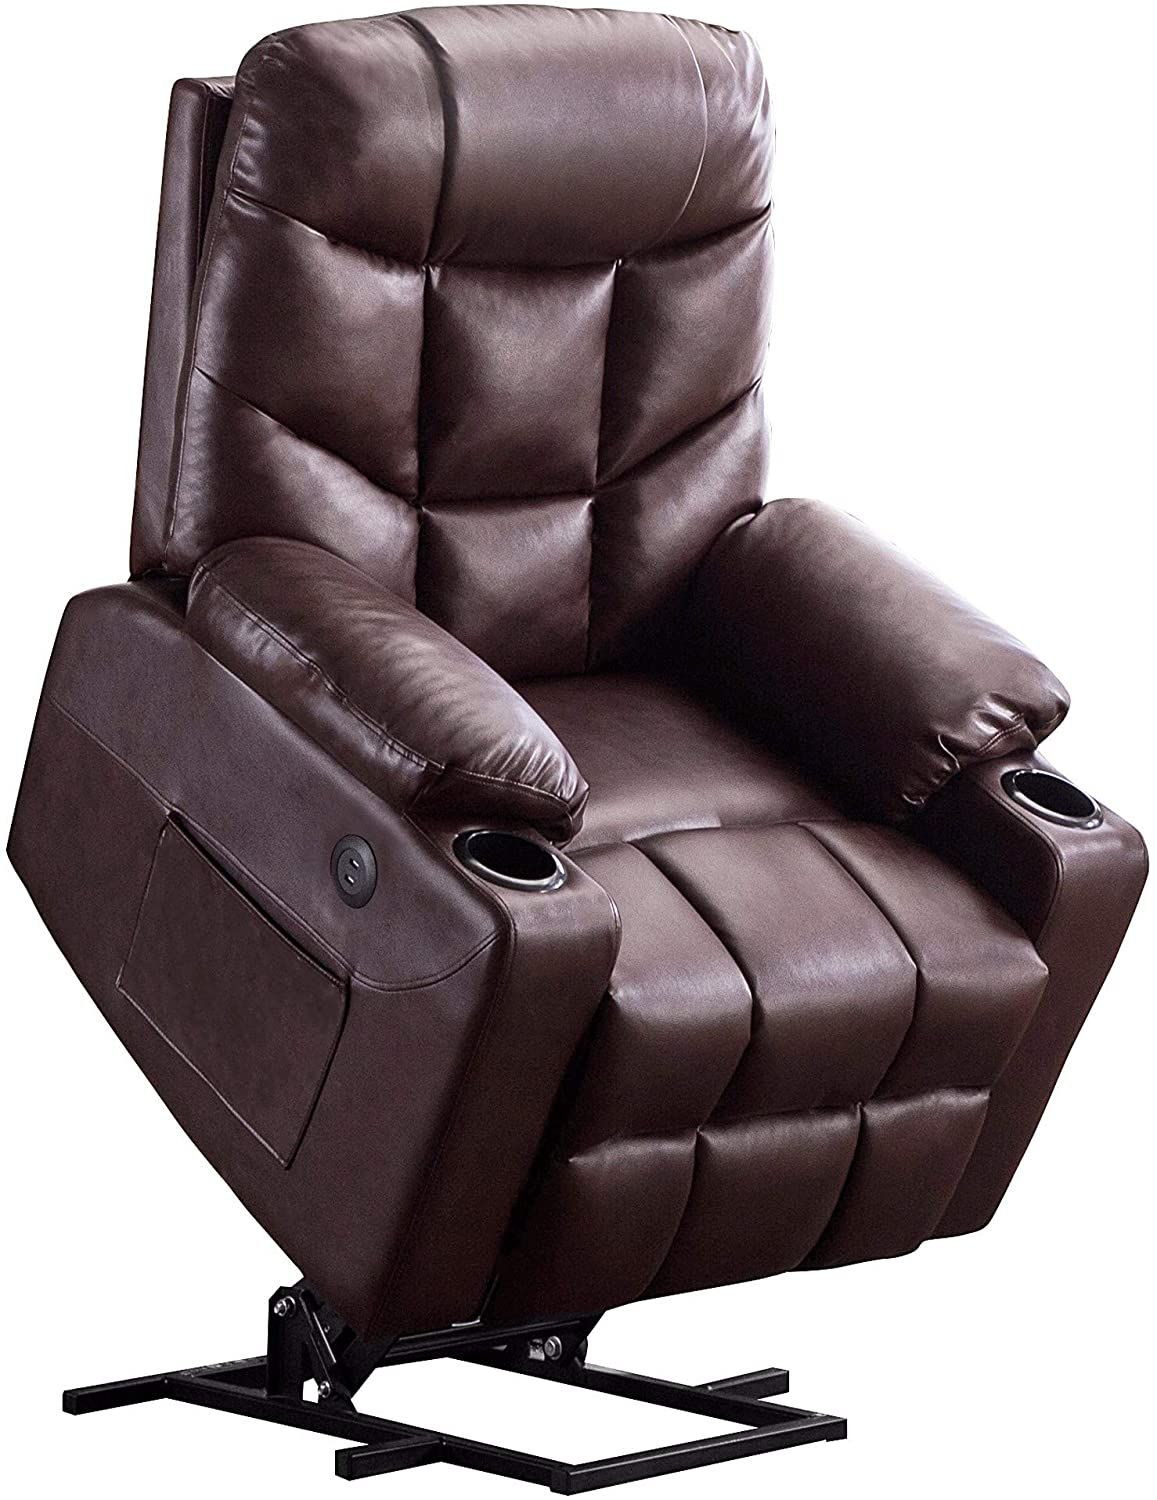 Pin On Luxury Recliners Home Furniture Ideas